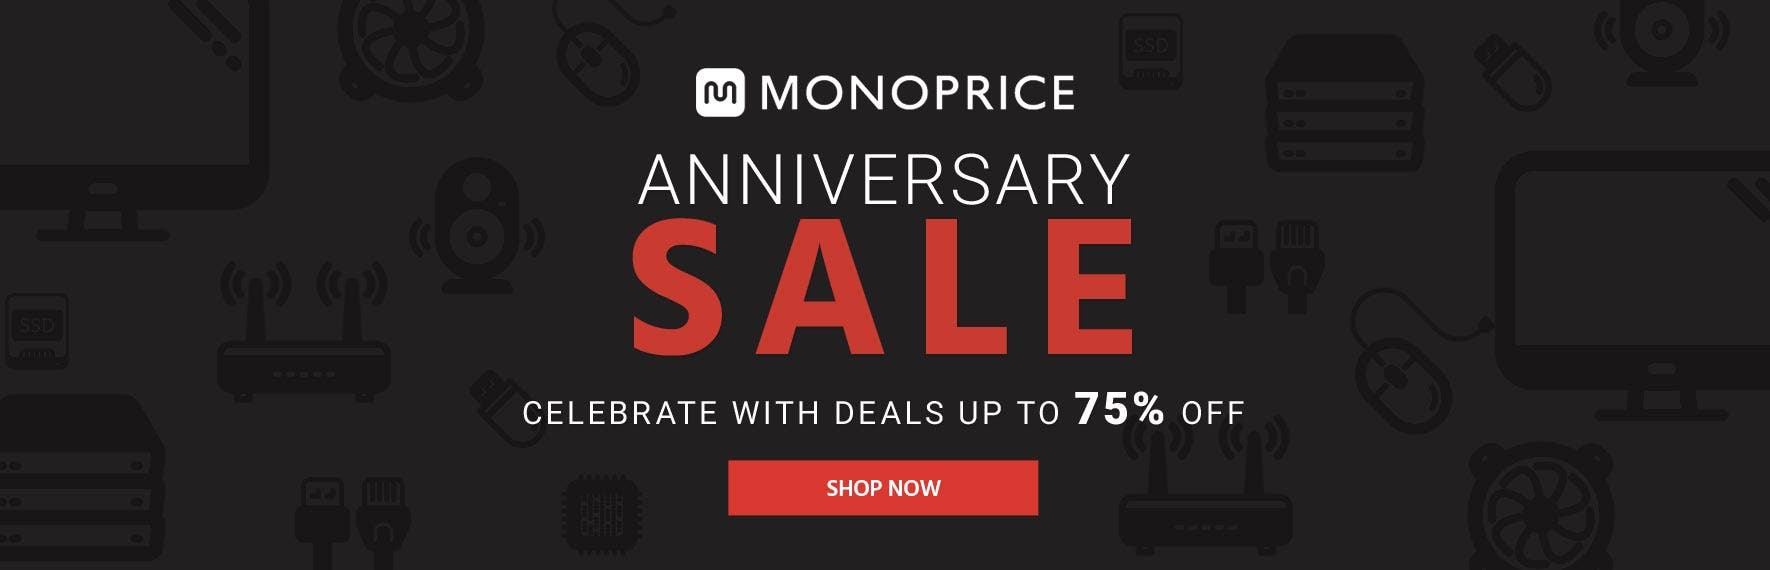 Monoprice (logo)Anniversary Sale Celebrate with deals up to 75% off Shop Now >